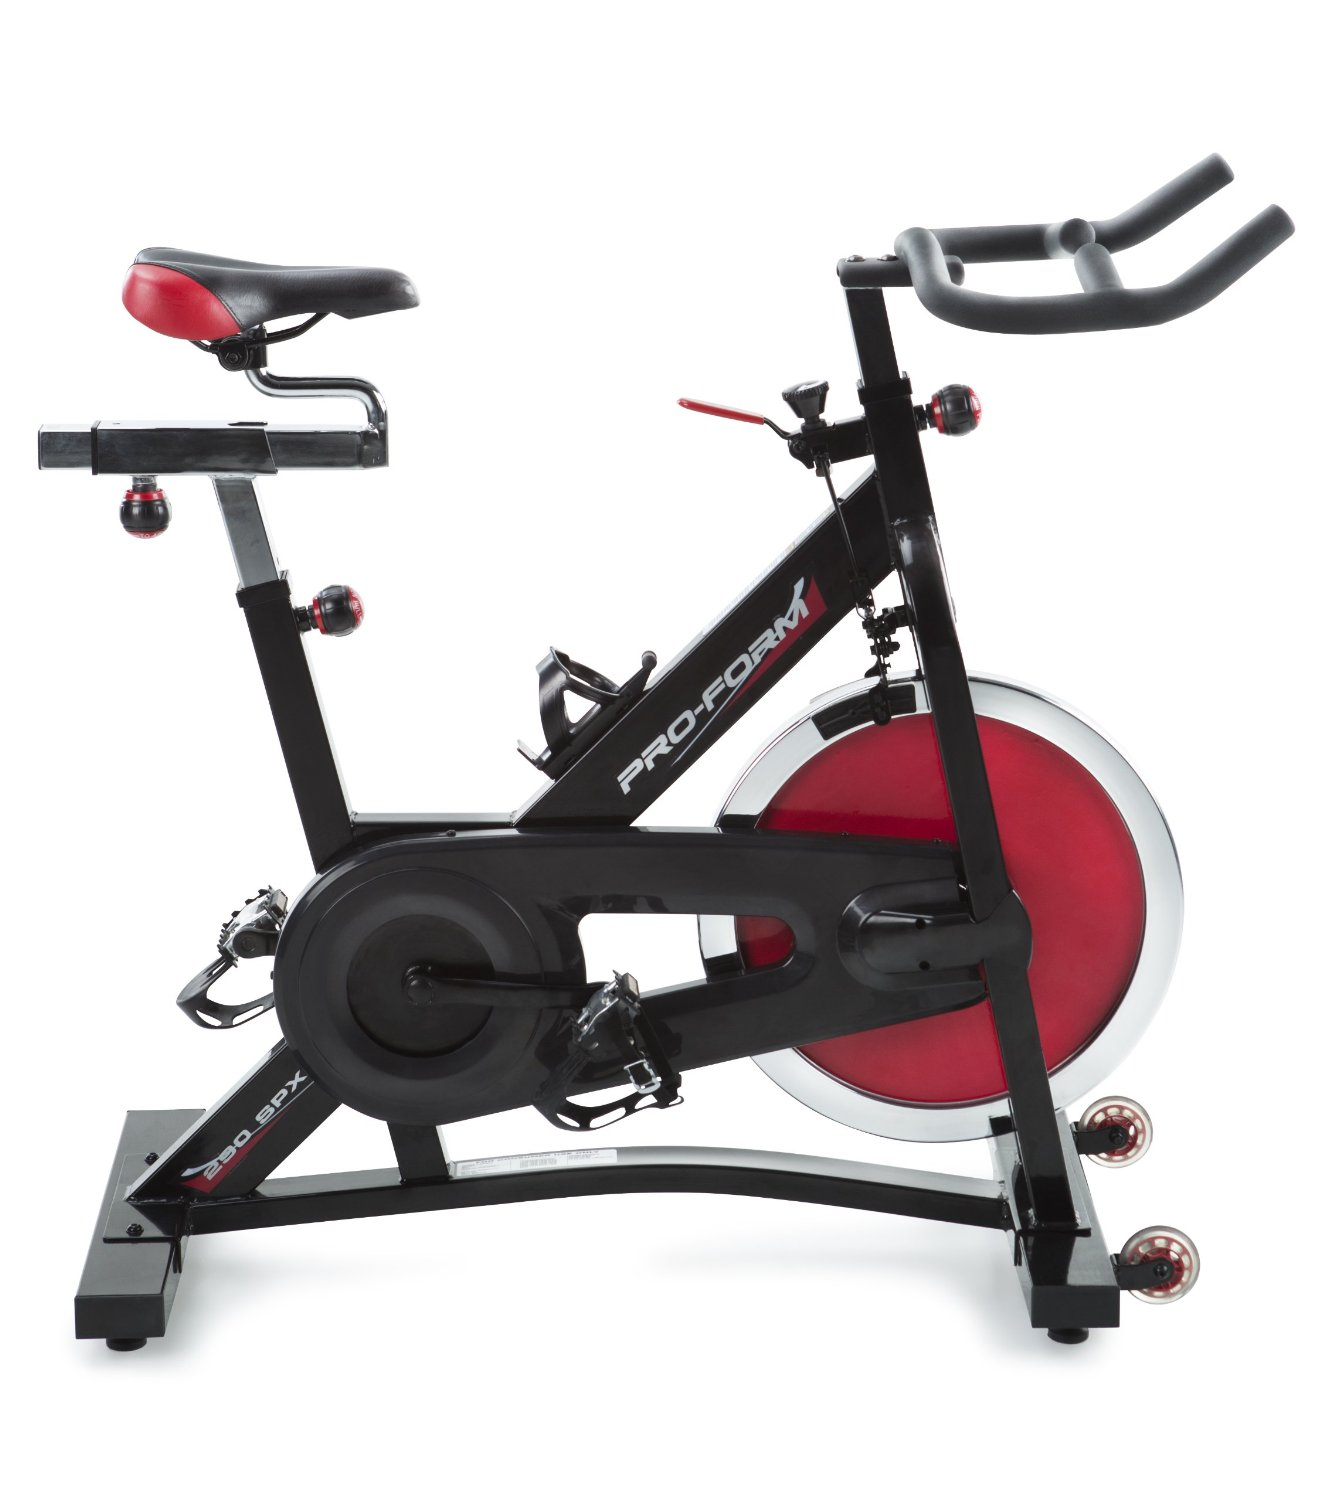 Proform 350 Spx Exercise Bike Pfex02914: World's #1 Fitness Equipment Website